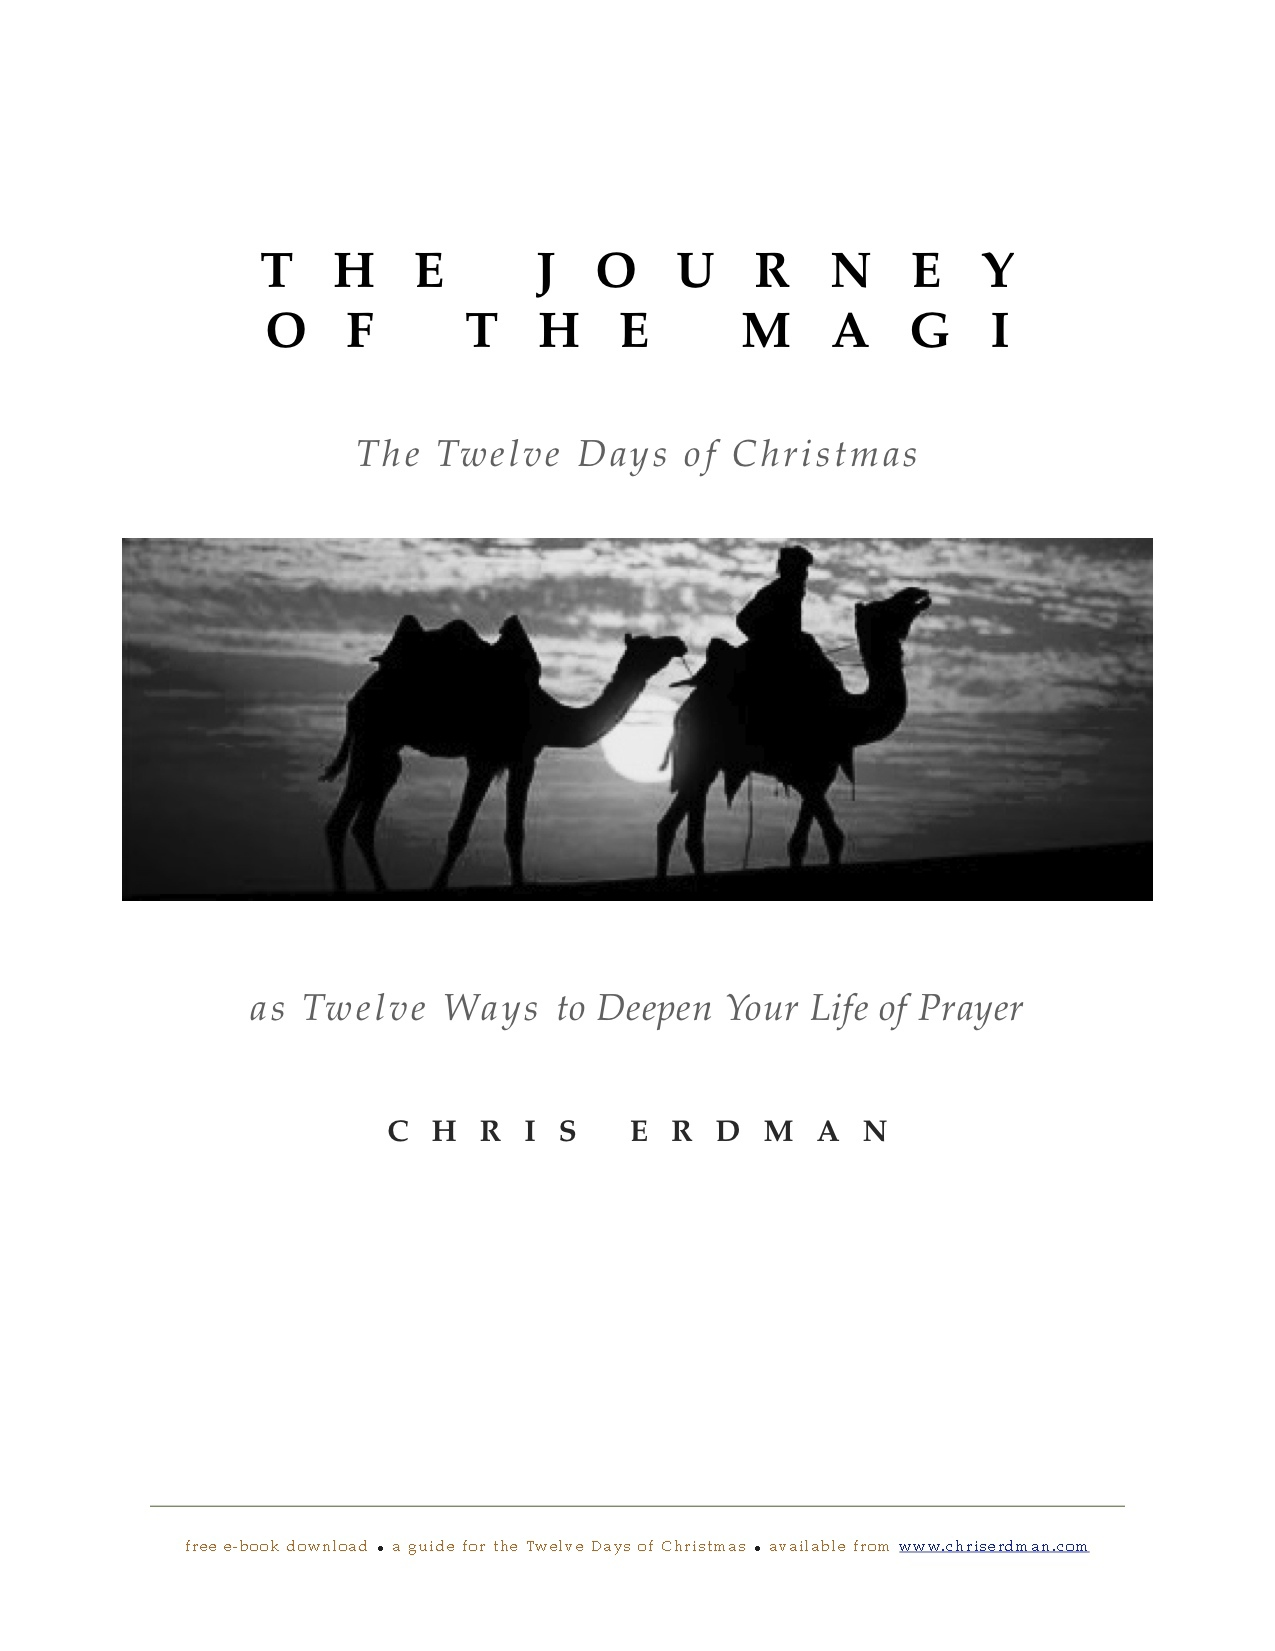 Journey of the Magi, e-book, cover